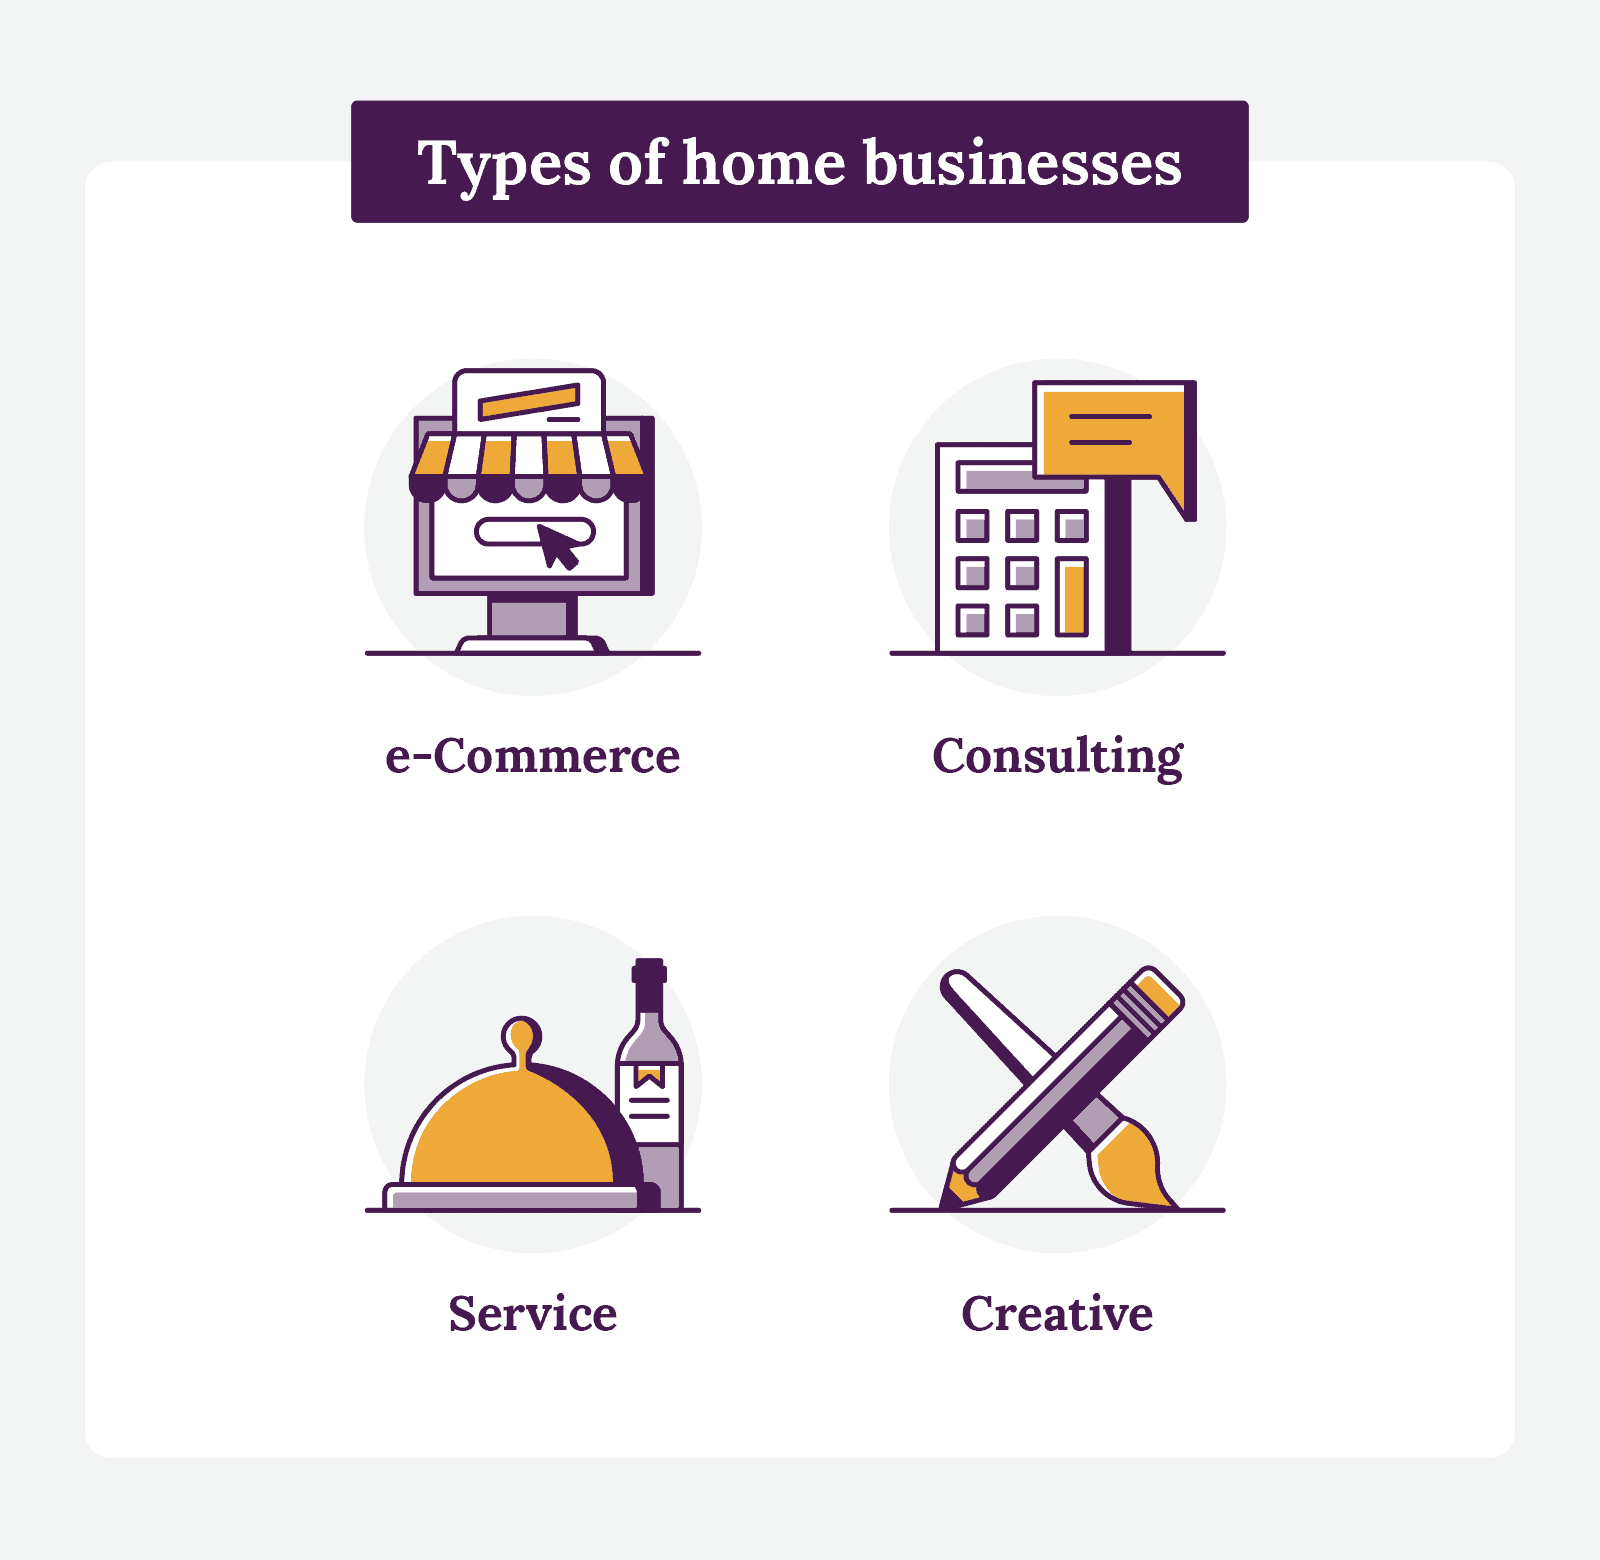 Types of home businesses